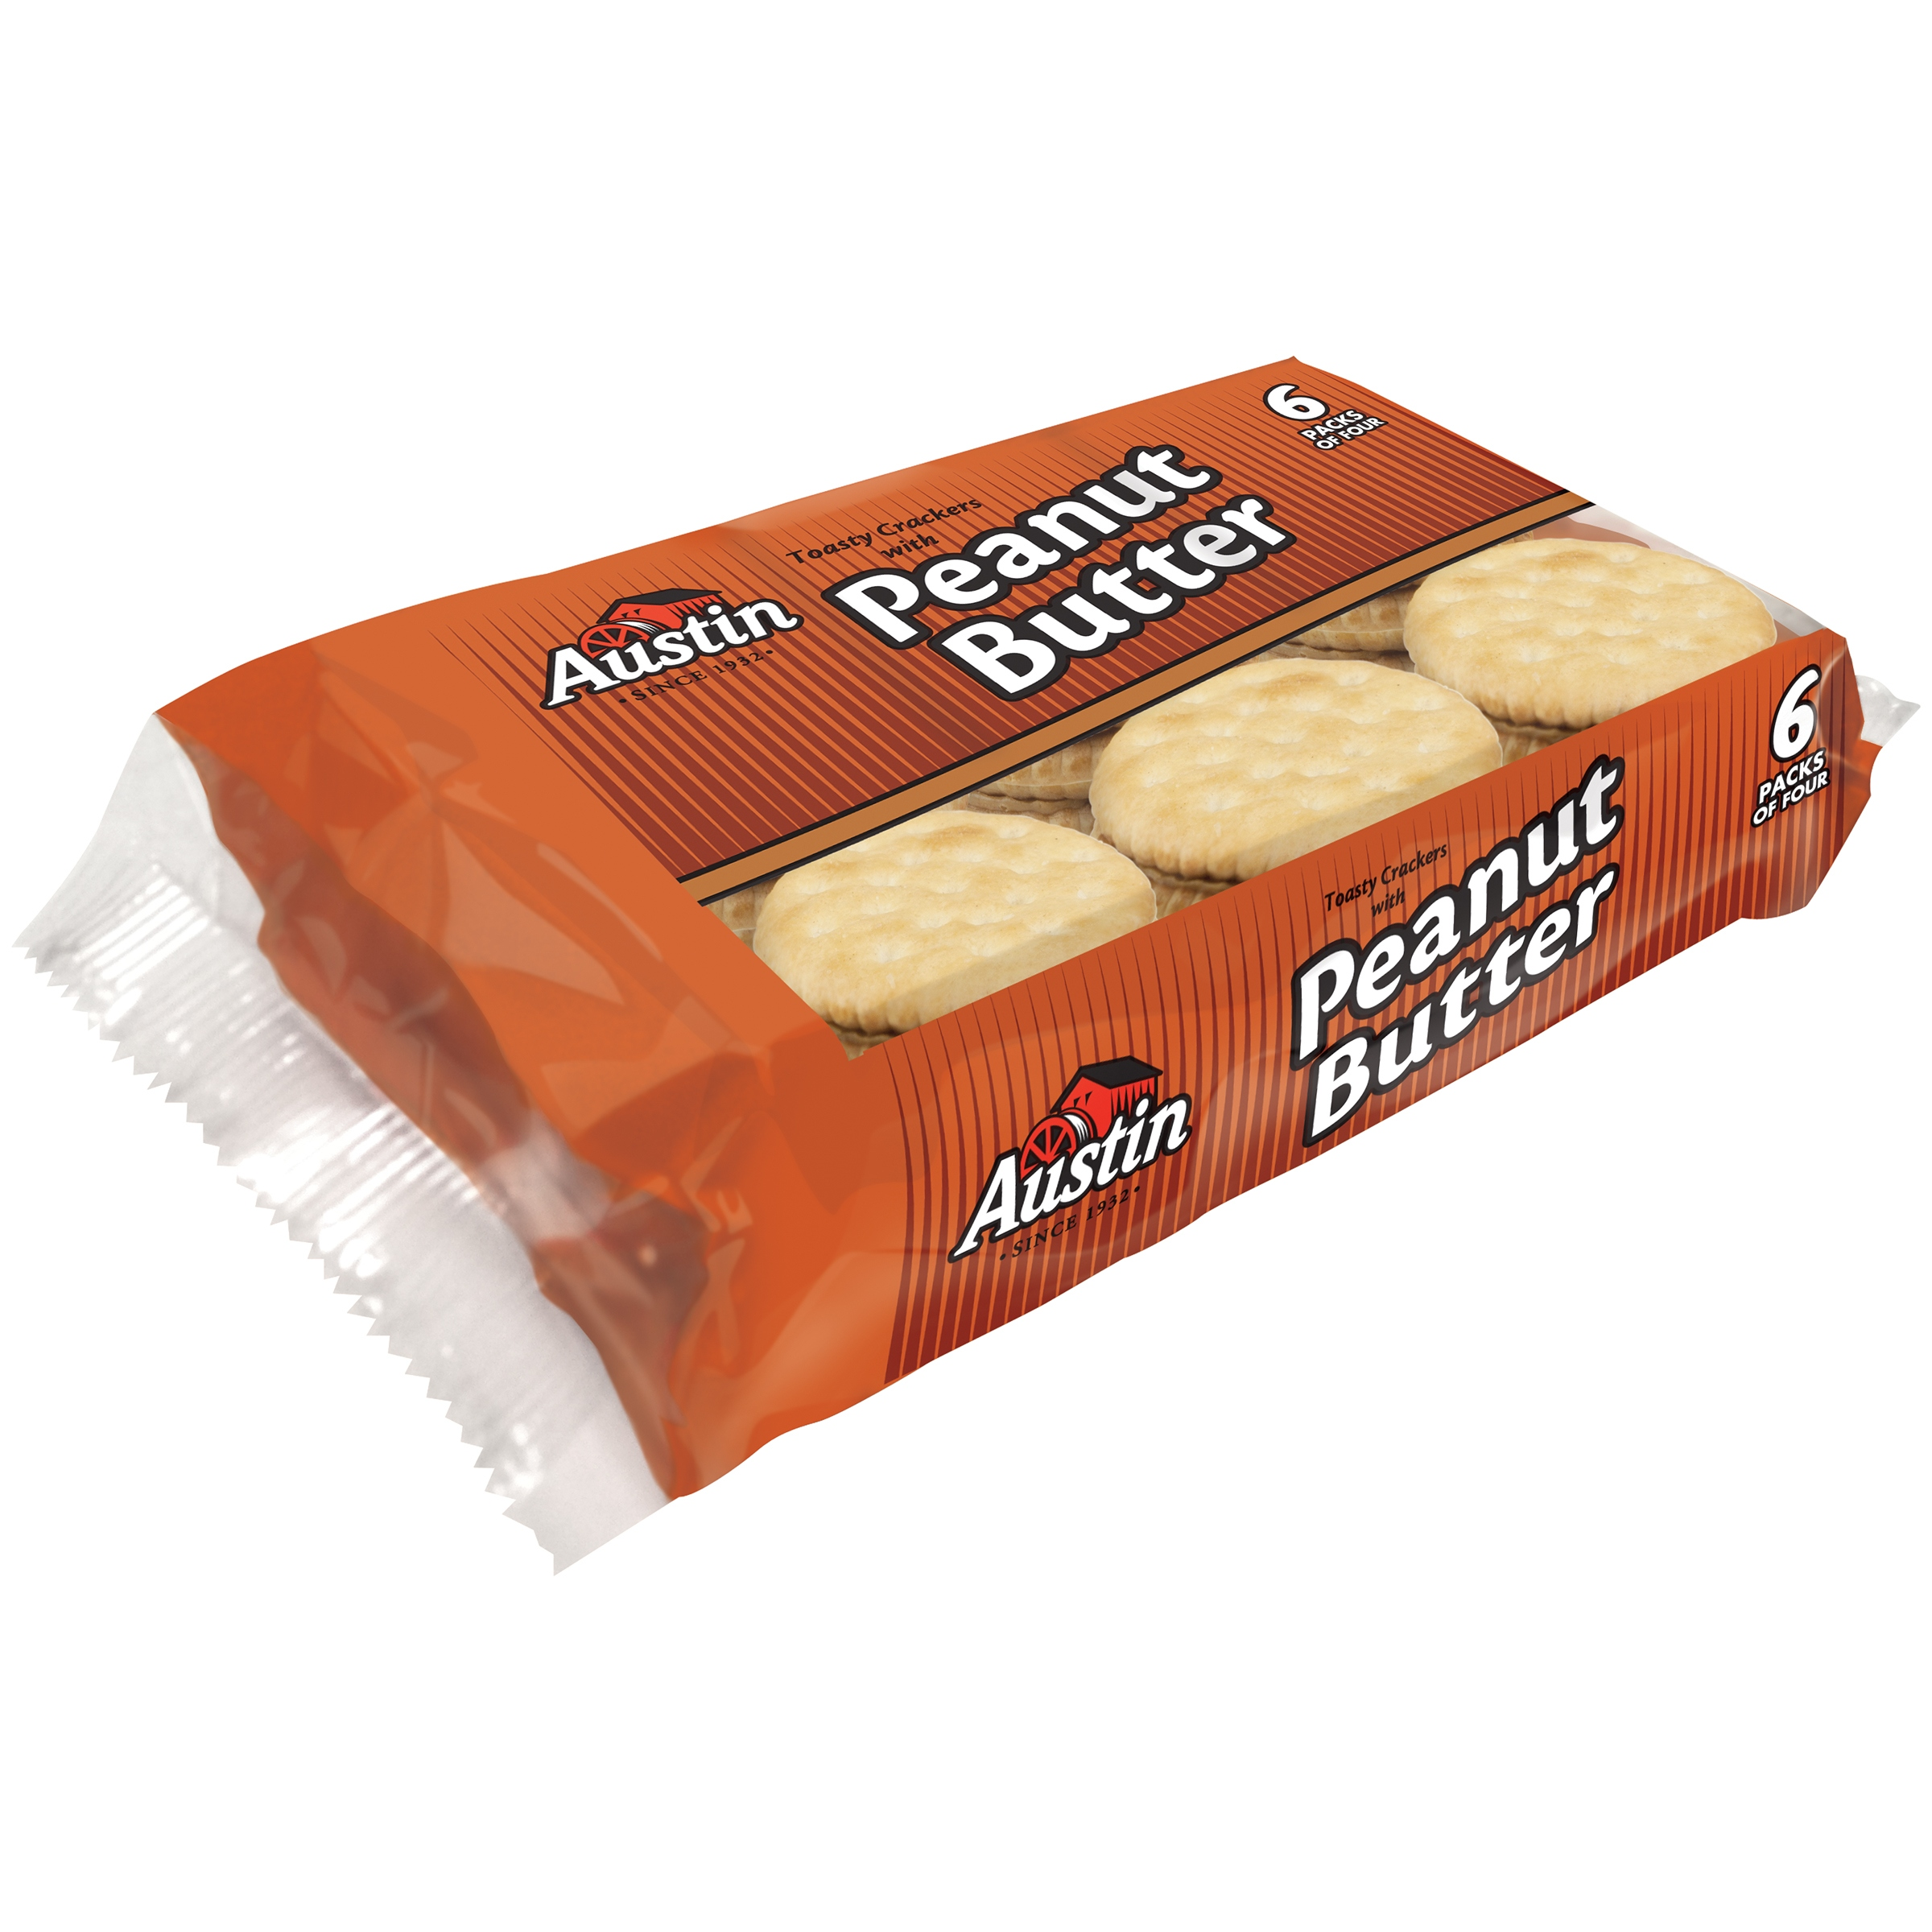 Austin Toasty Crackers with Peanut Butter, 0.93 oz, 6 pack